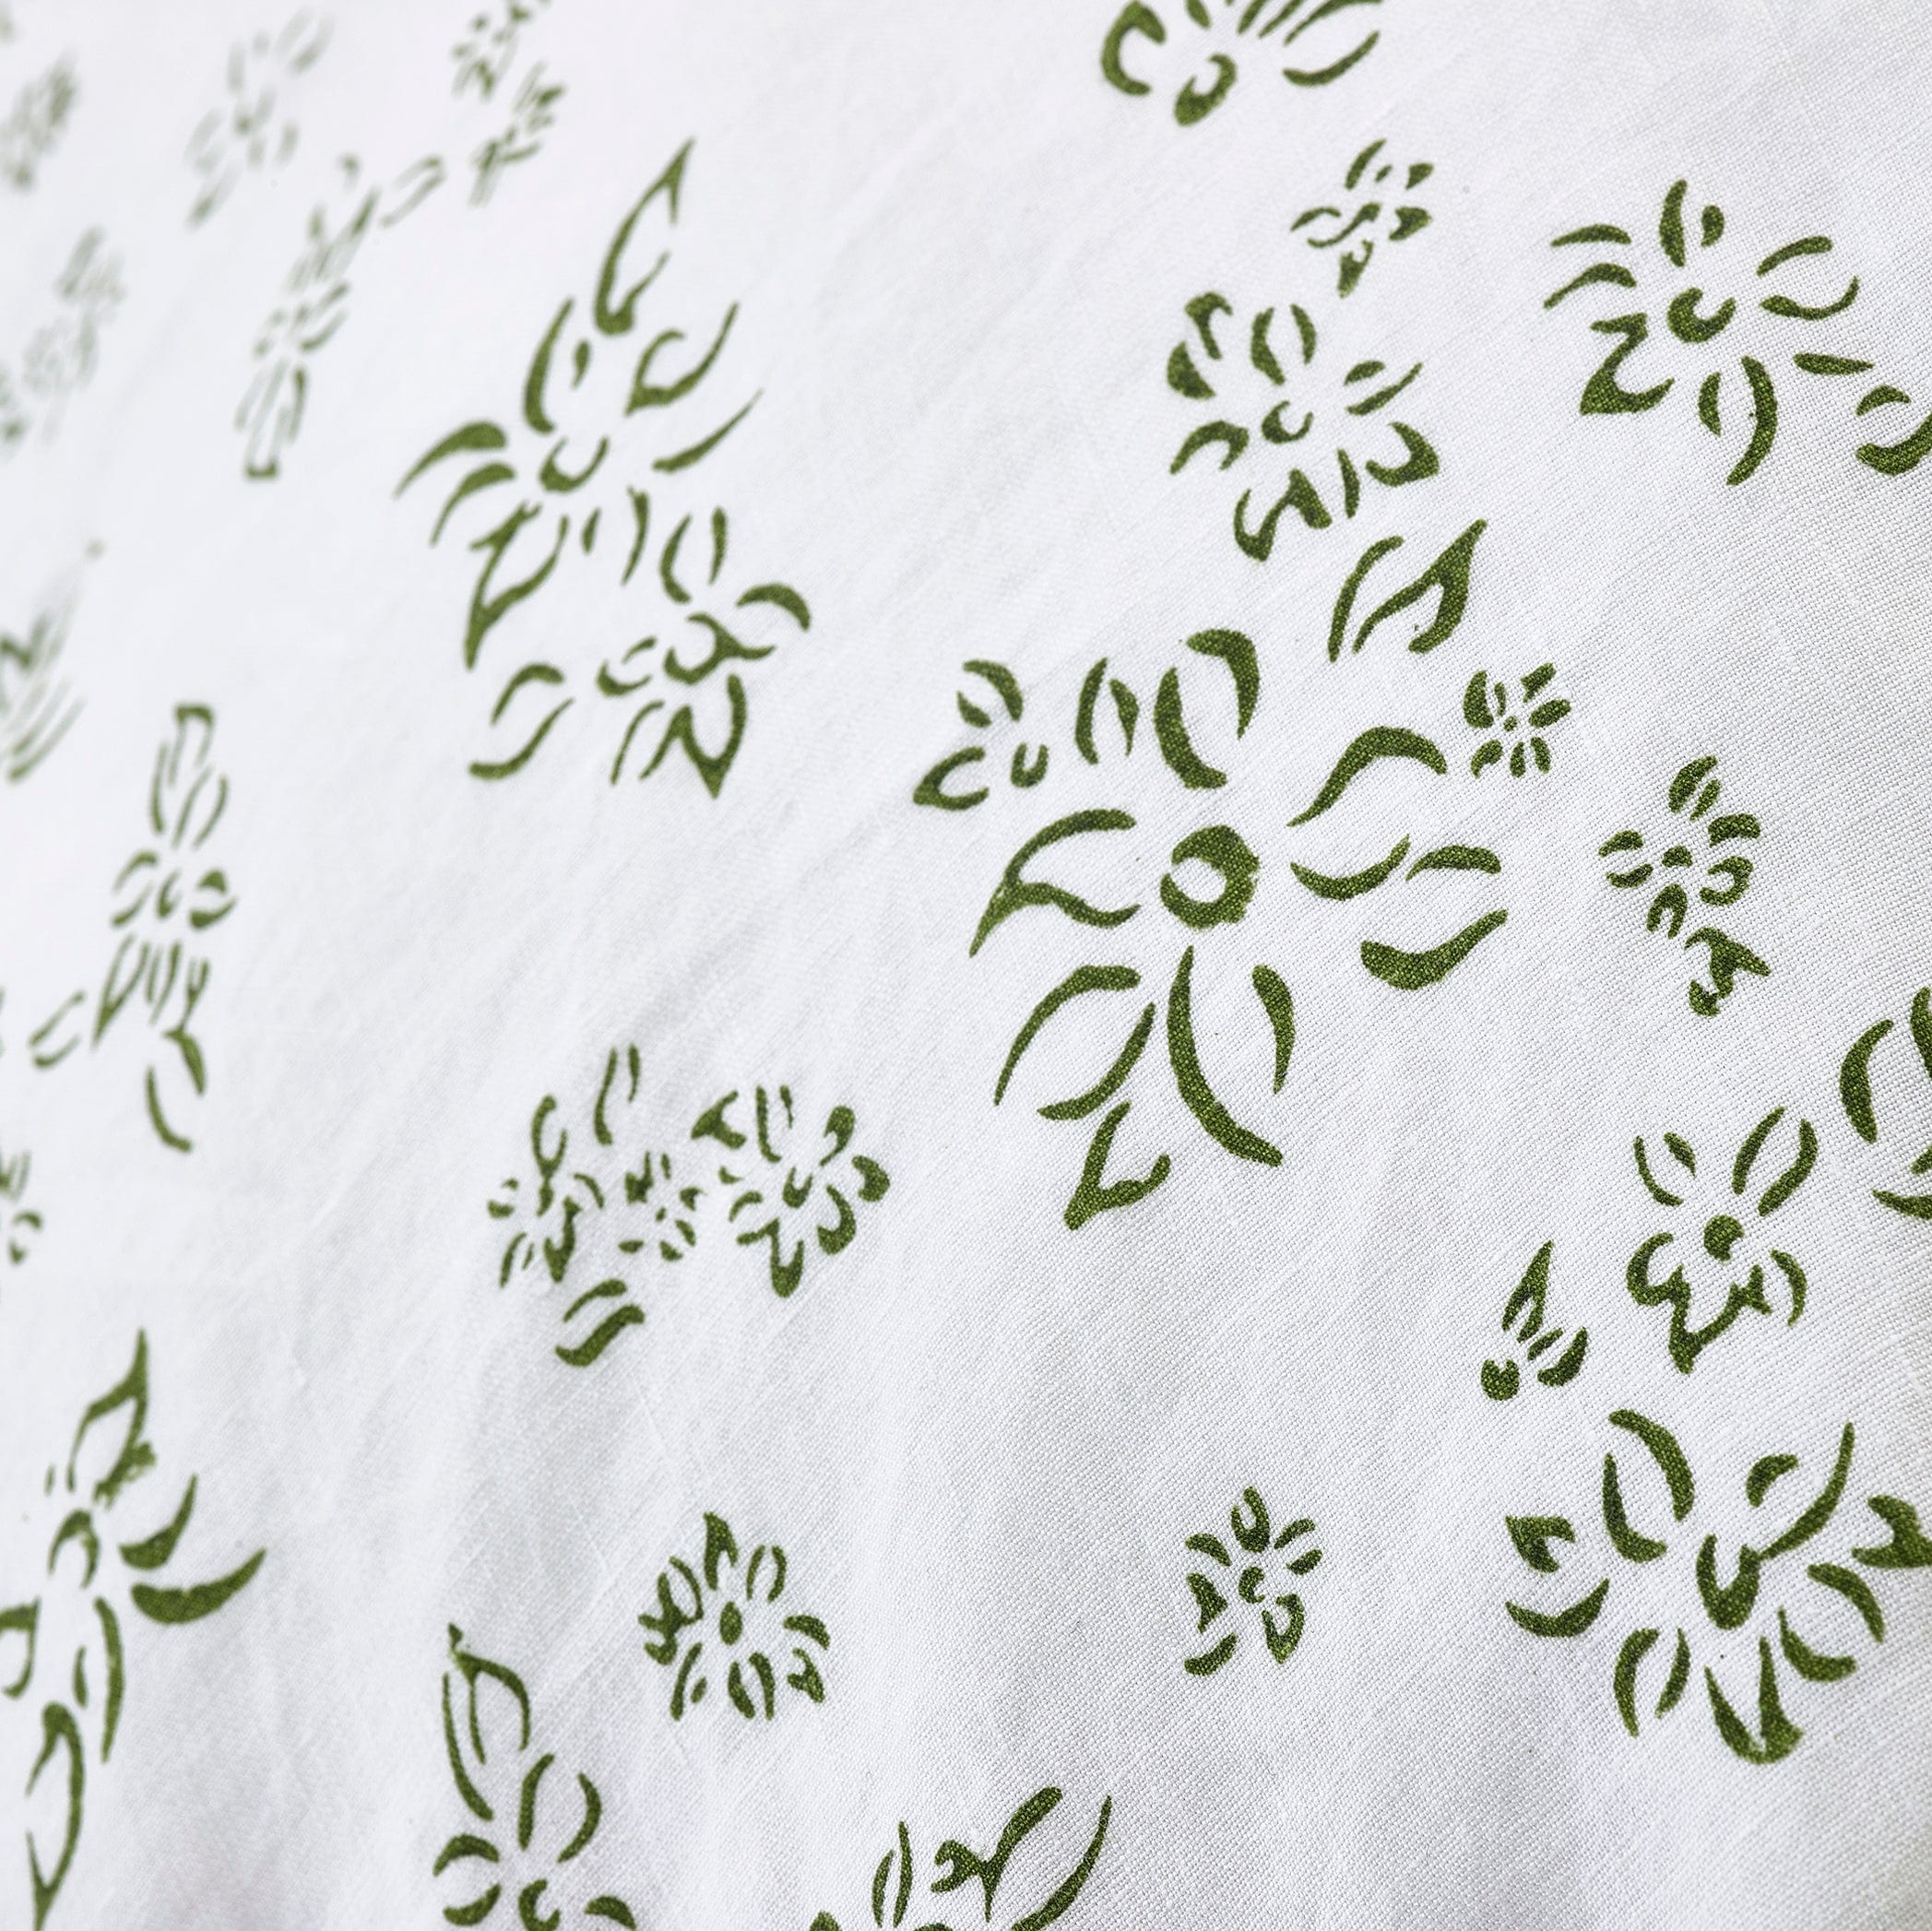 """Bernadette's Hand Stamped Falling Flower"" Linen Bed Set in Avocado Green, Double"